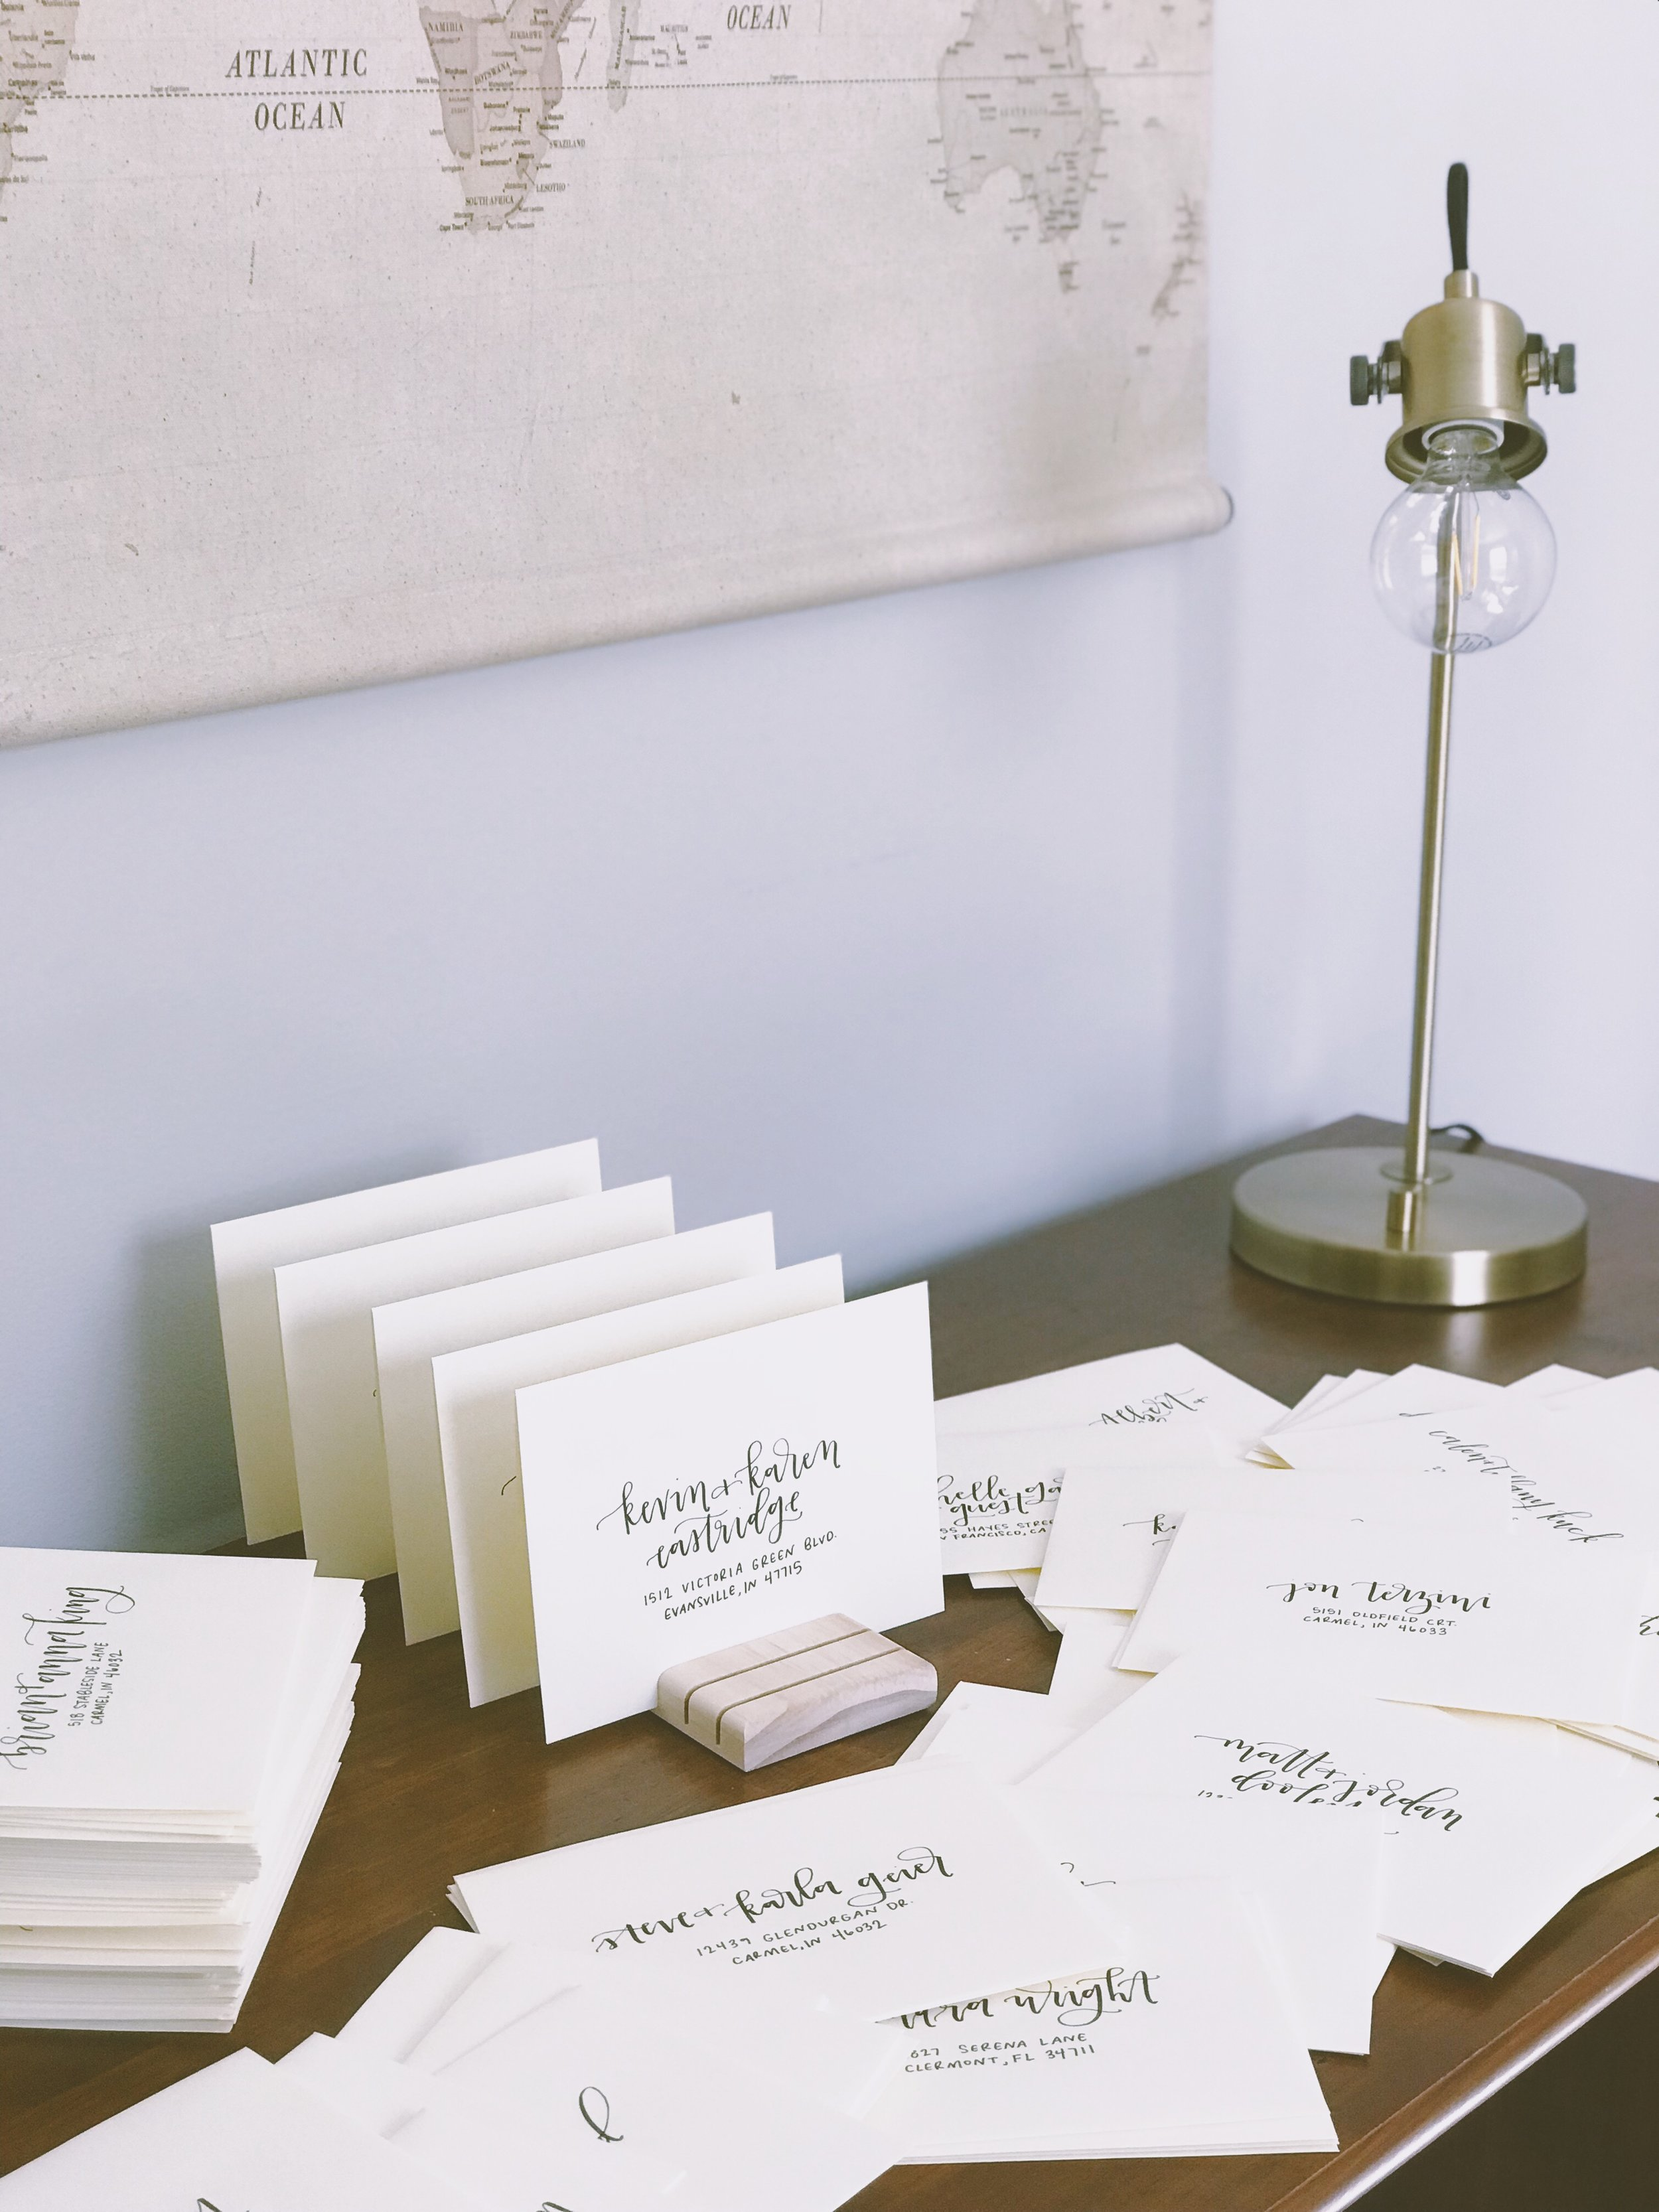 handwritten invitations